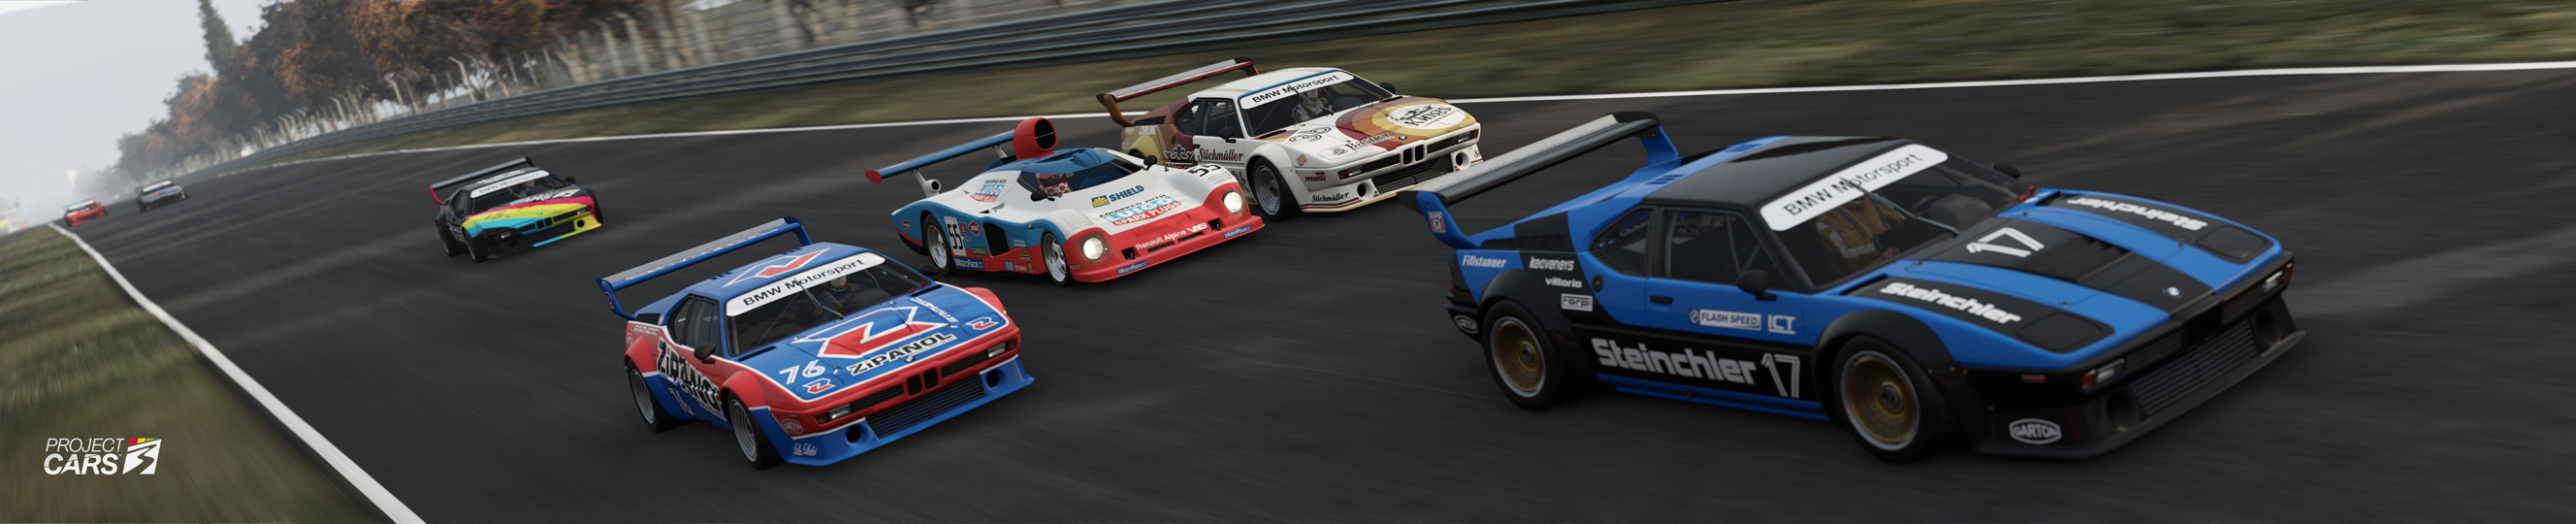 2 PROJECT CARS 3 ALPINE A442B at NORDSCHLEIFE crop copy.jpg